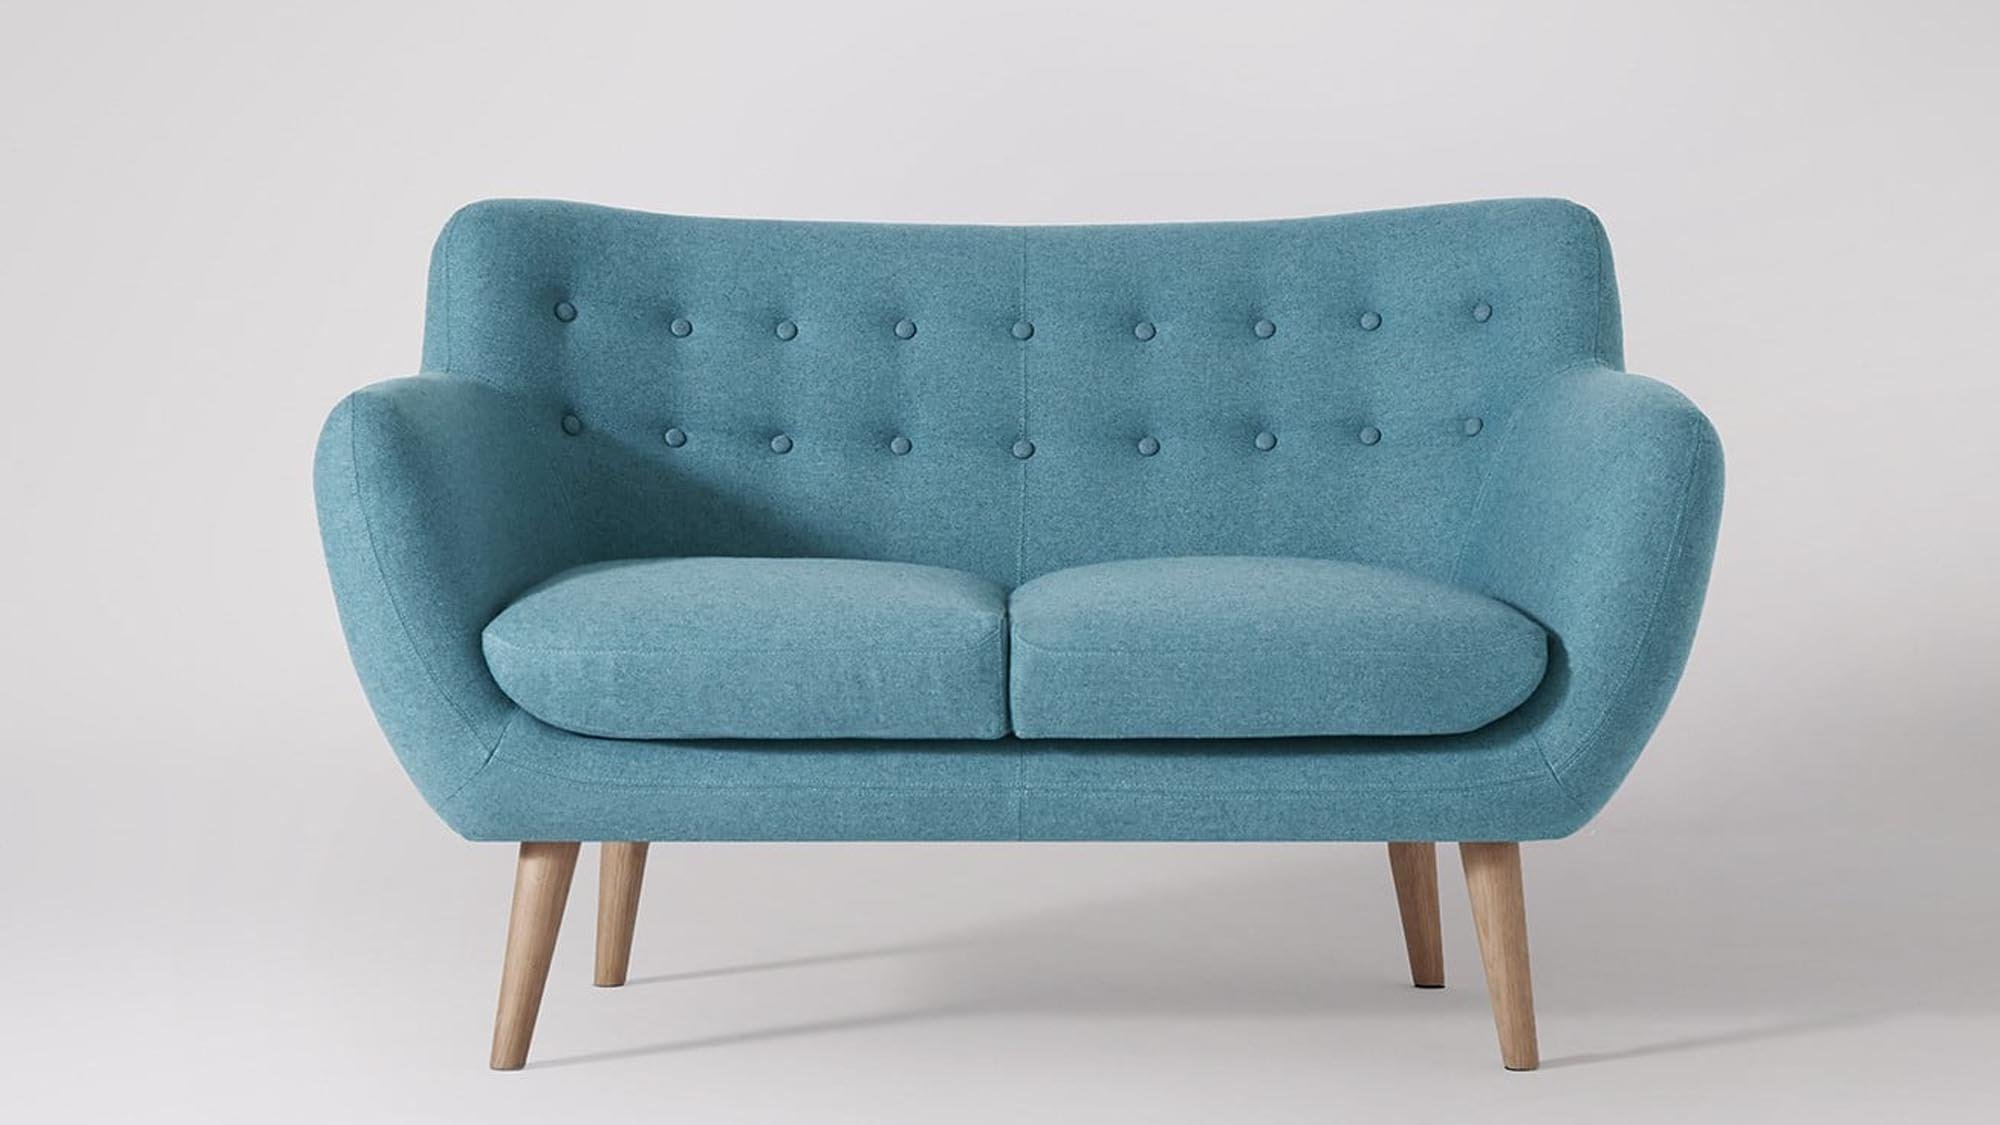 The Classic Poet Sofa Has Been Replicated Umpteen Times Since It Was  Originally Designed In The 1940s. We Love This One From Swoon, Which Is  Available As A ...